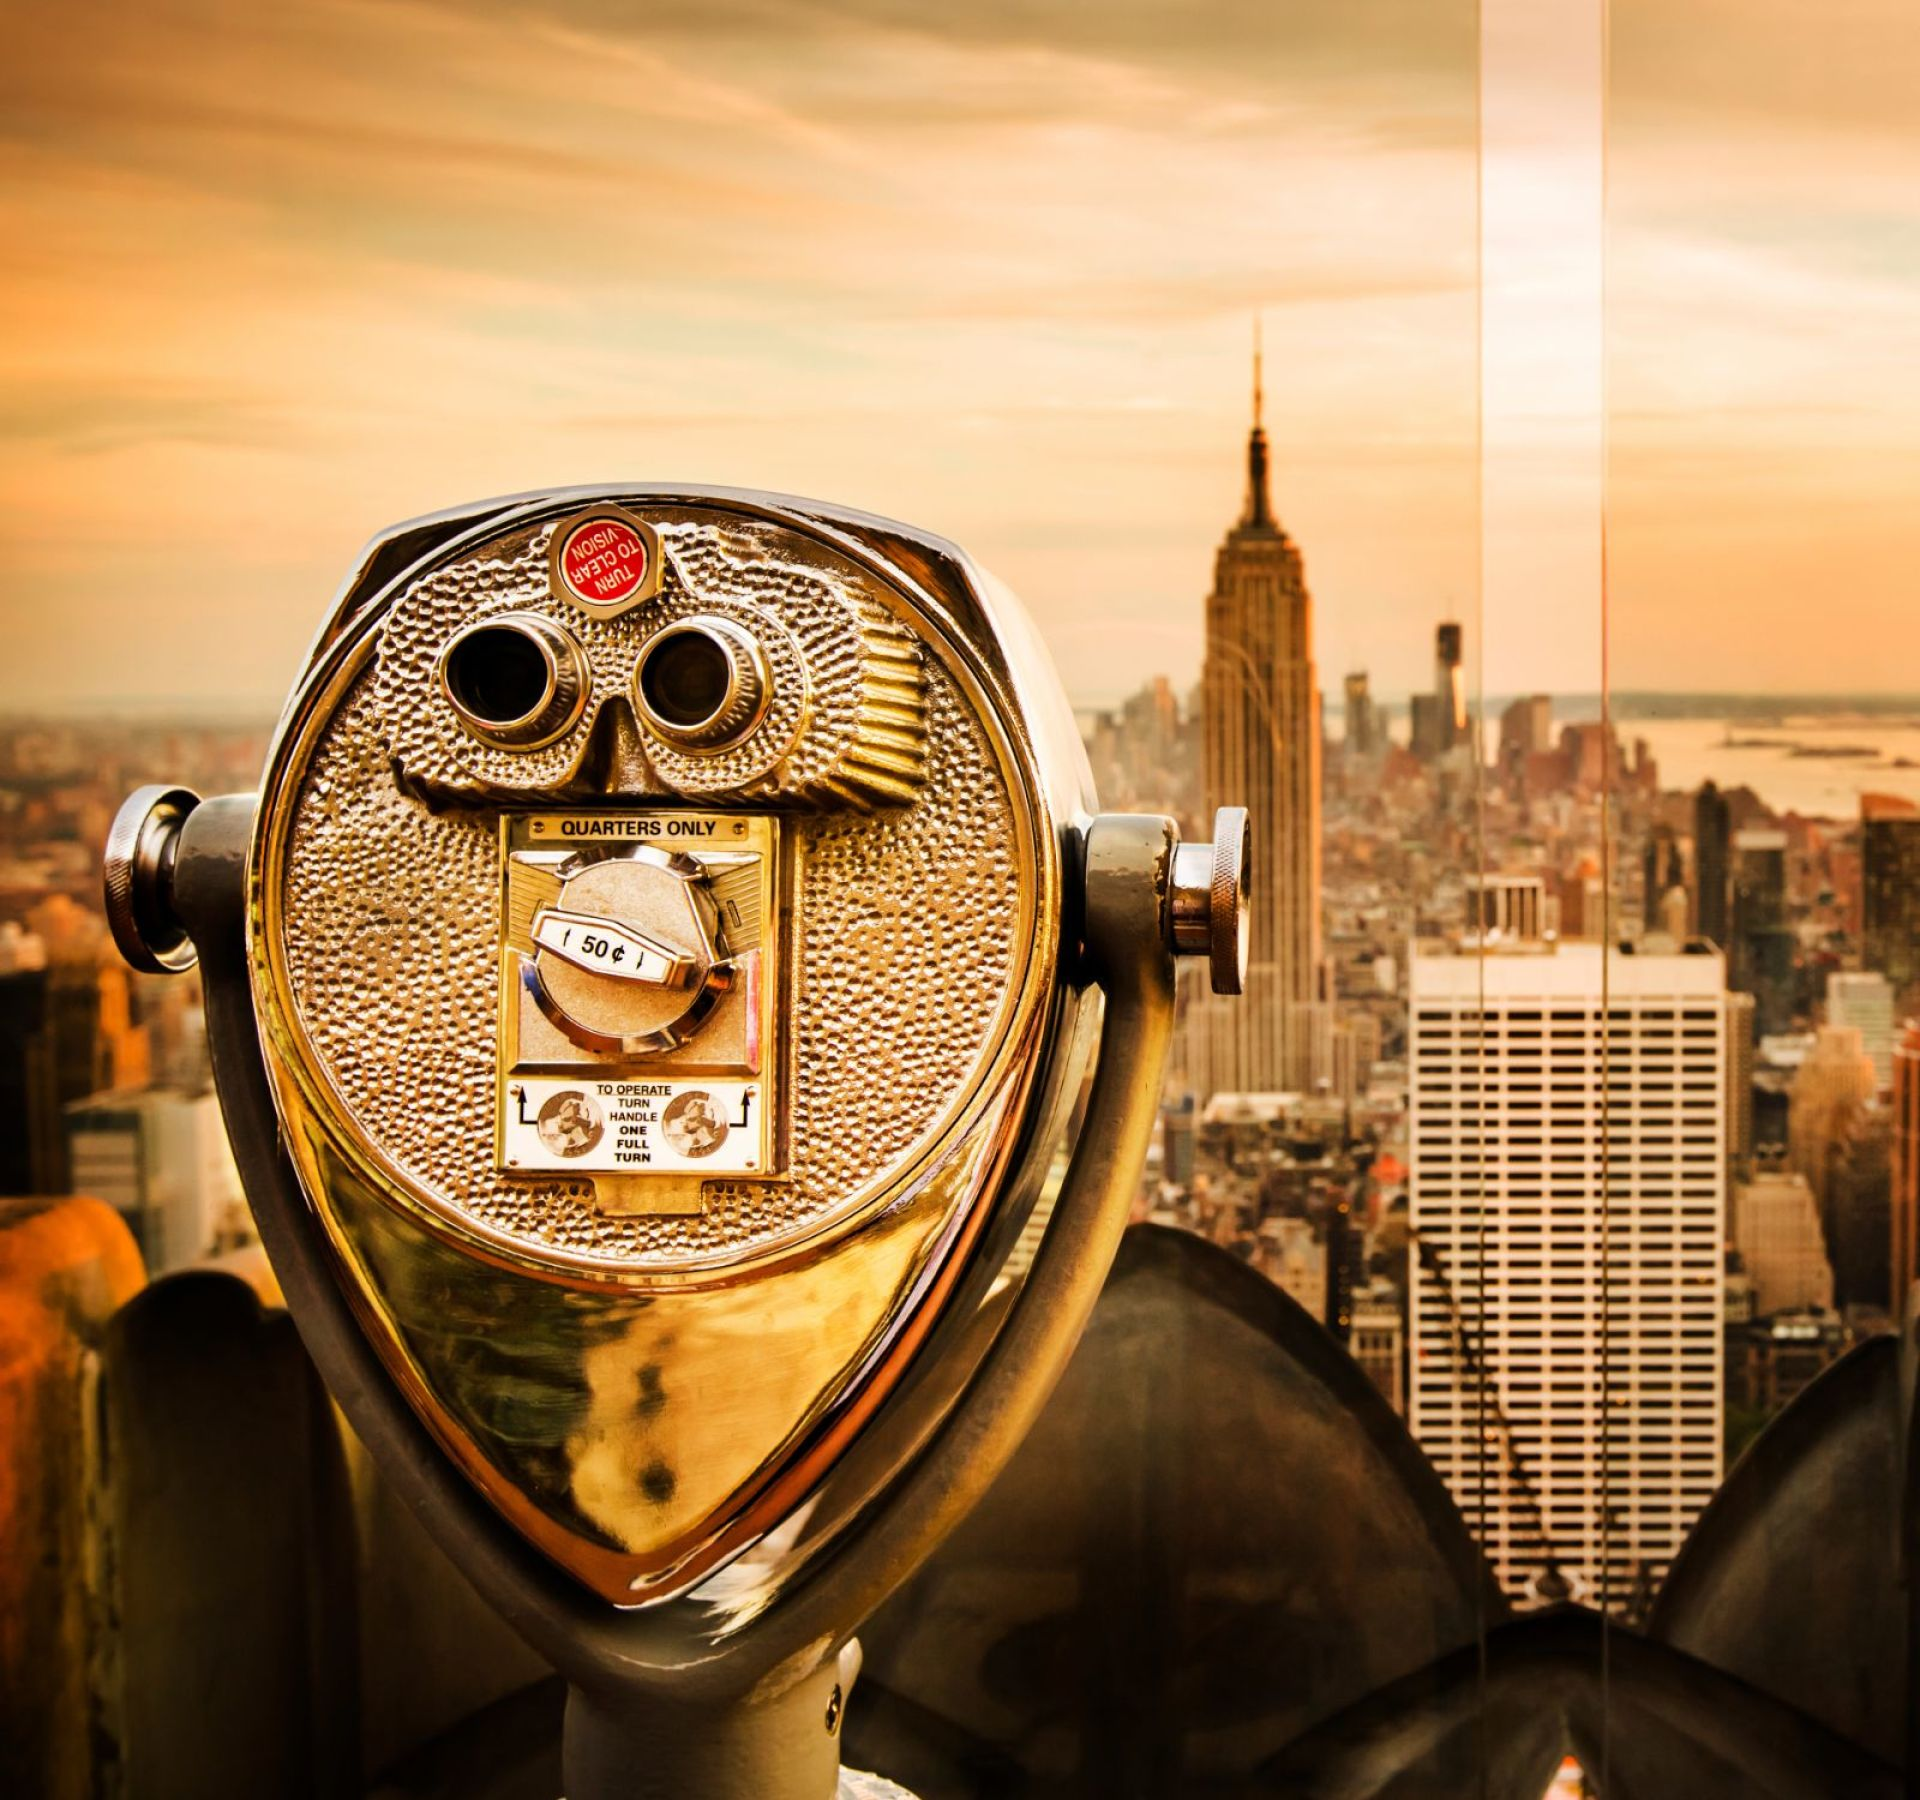 It's Never Too Early to Plan Your NYC Escape! SAVE 20% When You Book In Advance